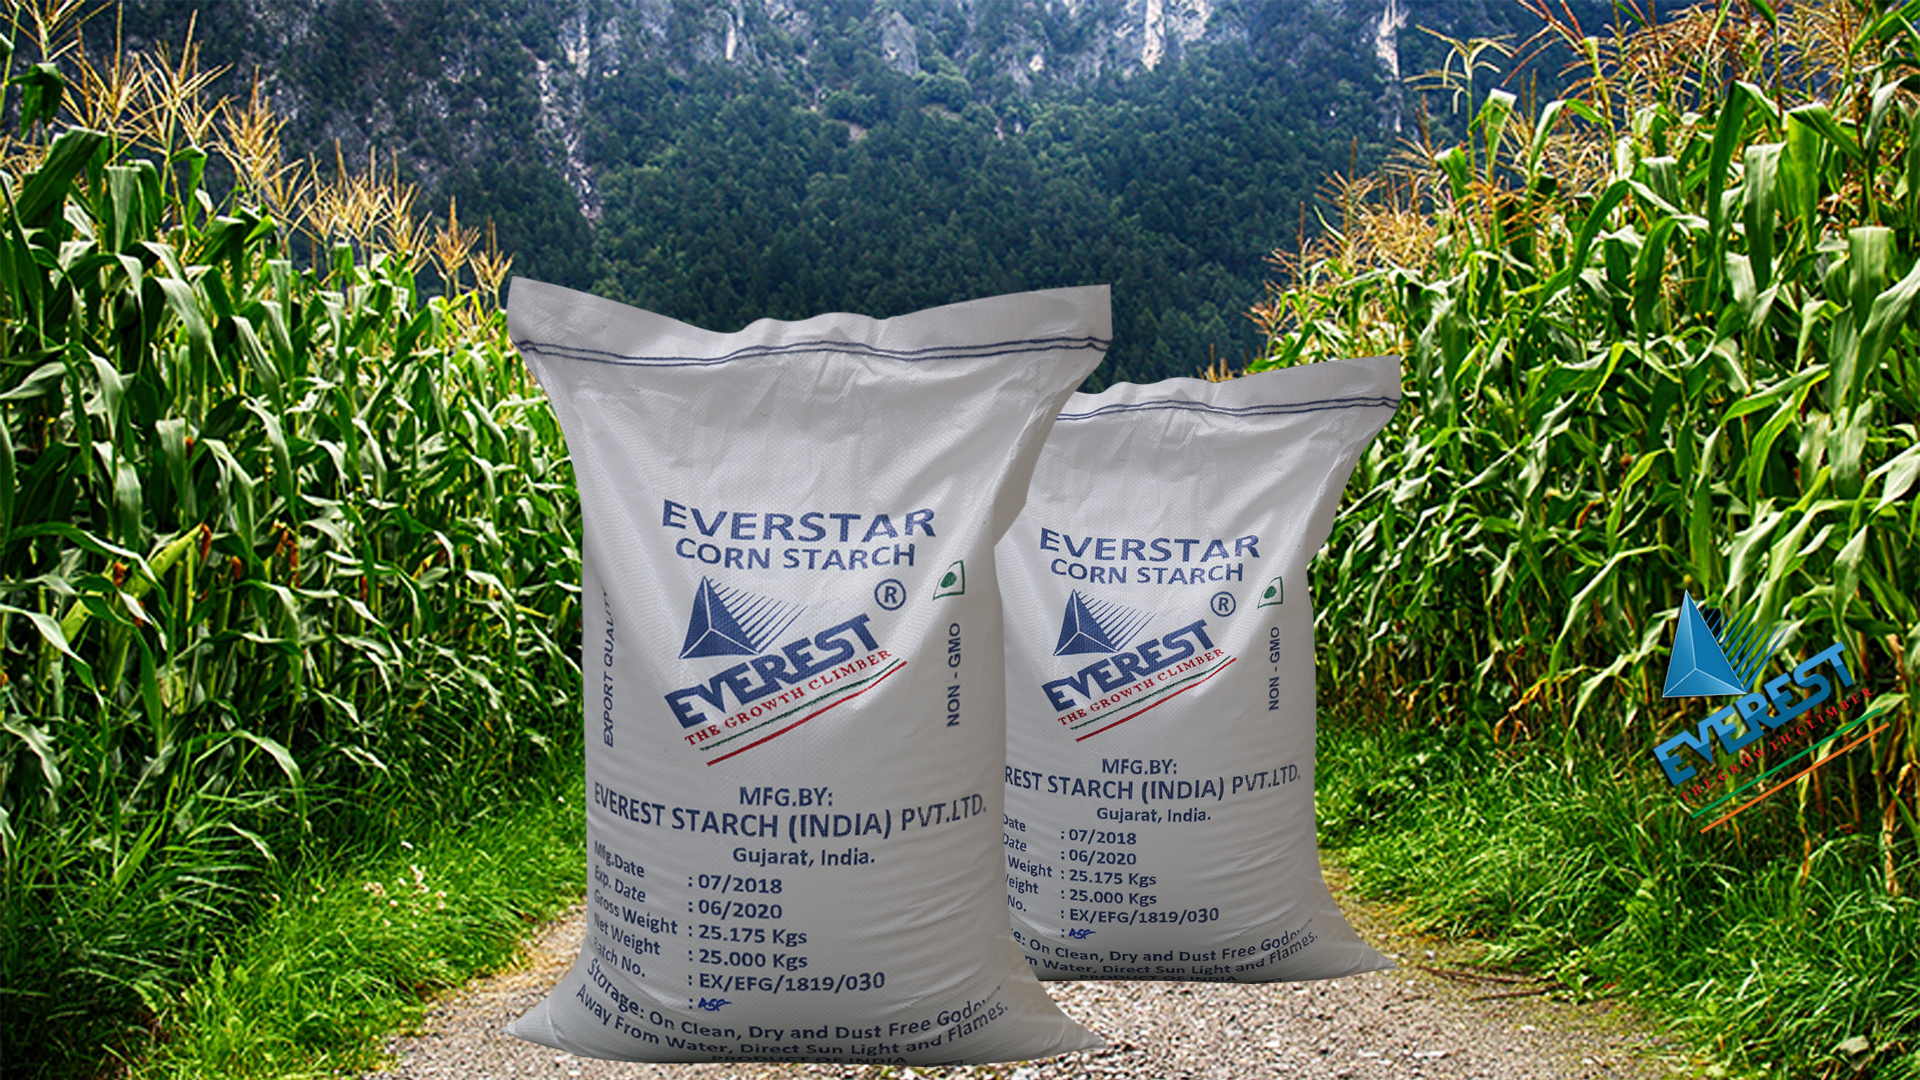 EVEREST STARCH (INDIA) PVT. LTD.